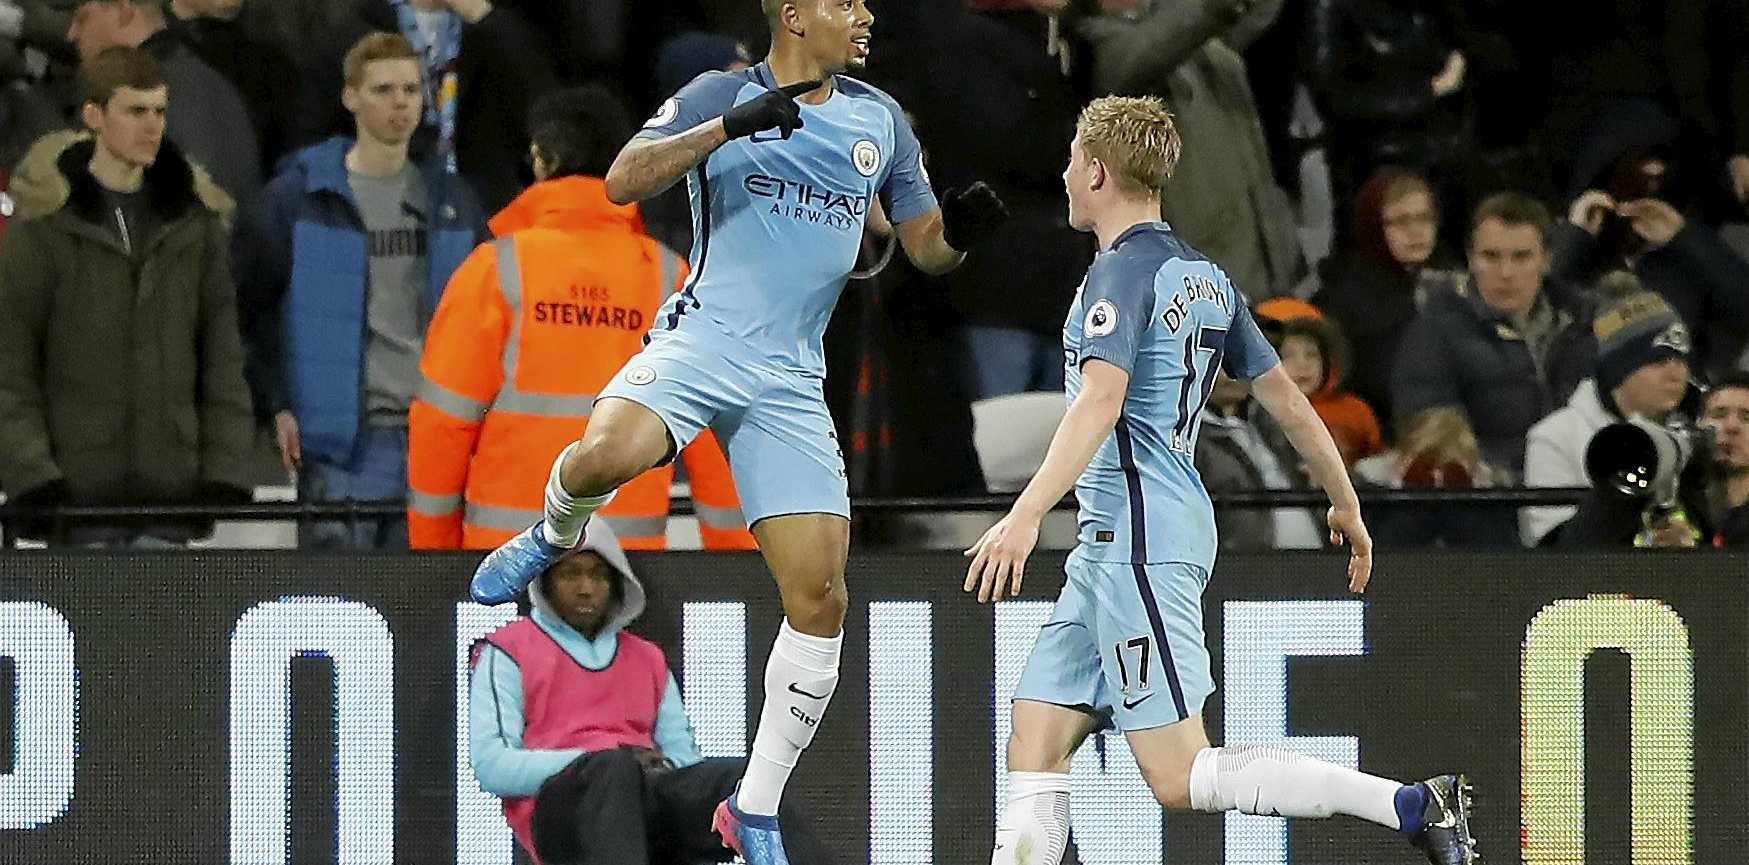 Manchester City's Gabriel Jesus, left, celebrates scoring one of his team's four goals against West Ham.